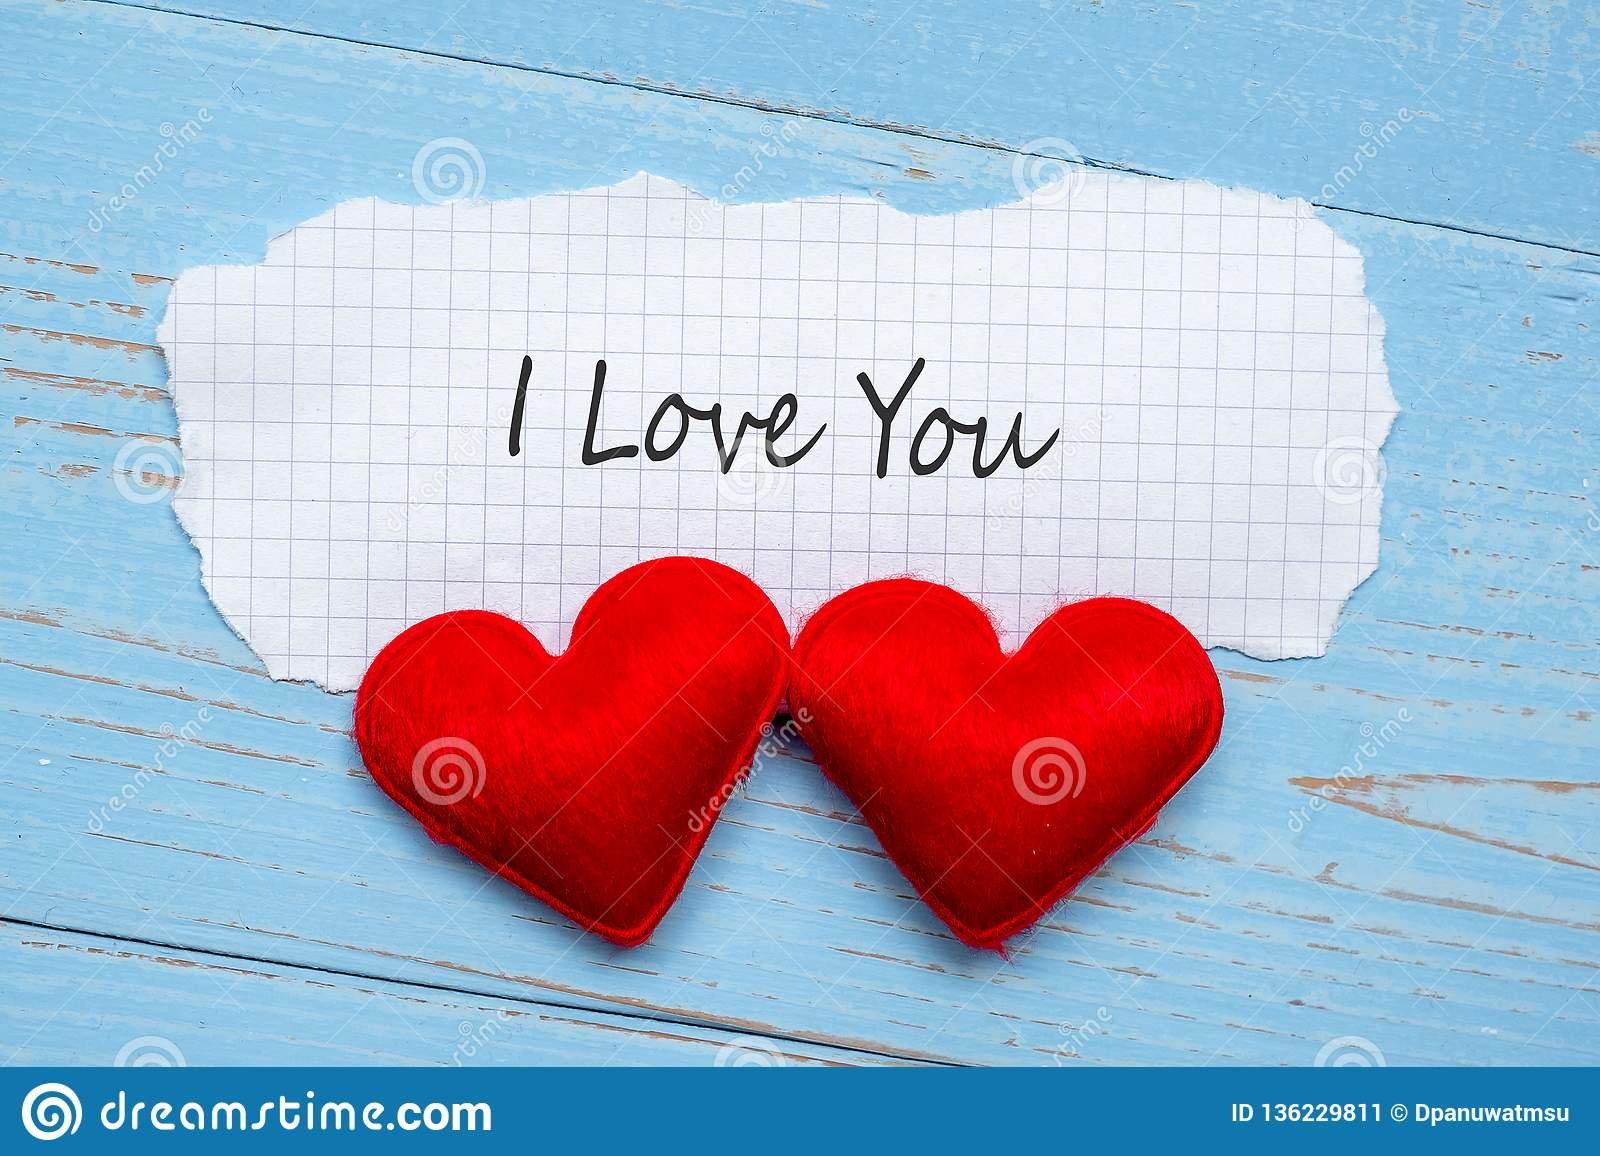 I LOVE YOU word on paper note with couple red heart shape decoration on blue wooden table background. Wedding, Romantic and Happy